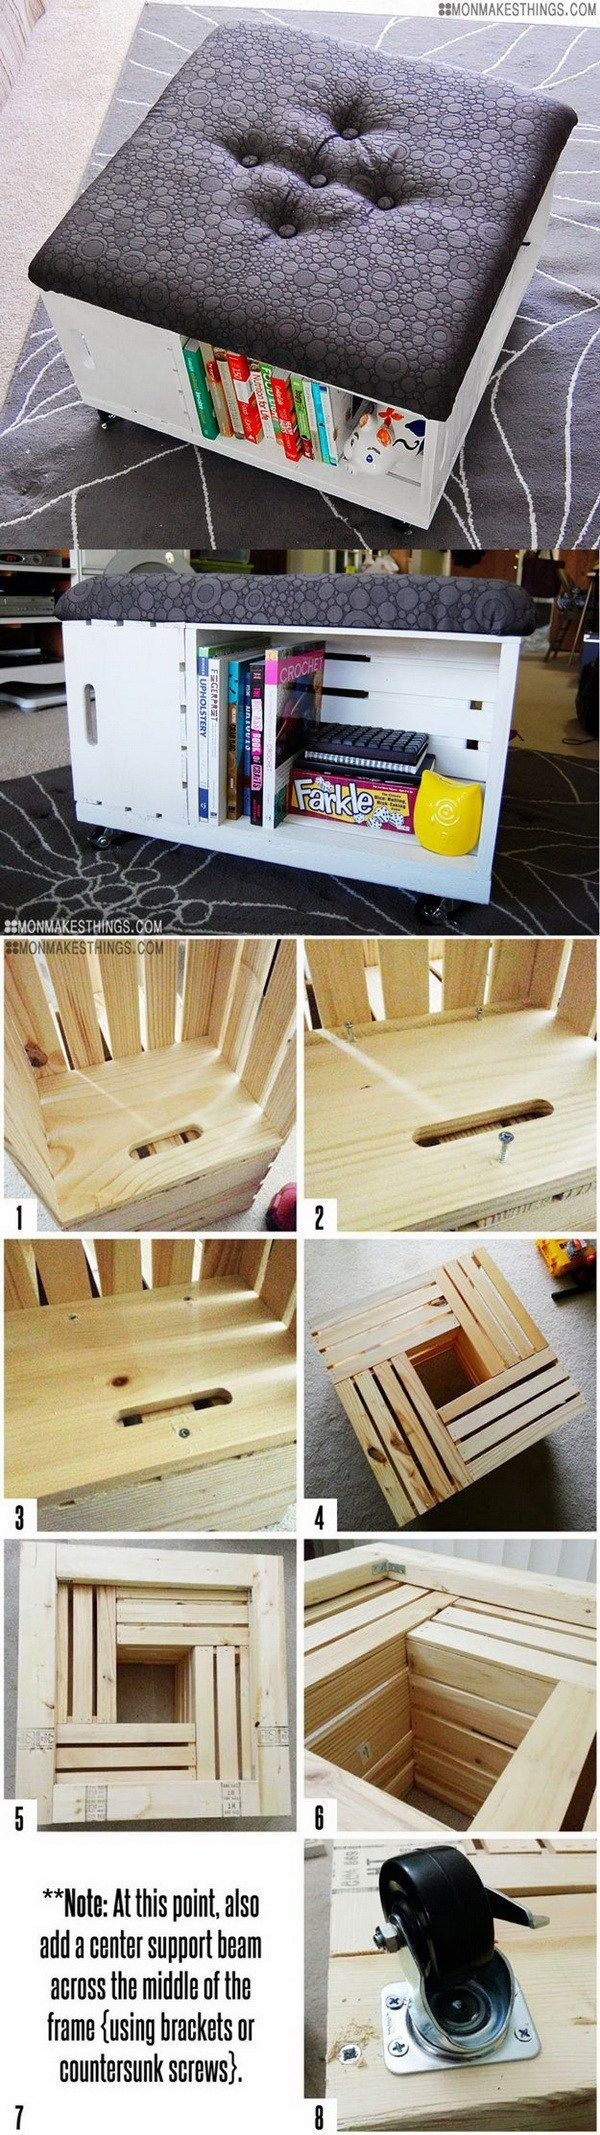 DIY Ottoman with Storage: This DIY ottoman is easy to put together with some cheap wooden crates and gives you additional seating and storage at the same time.